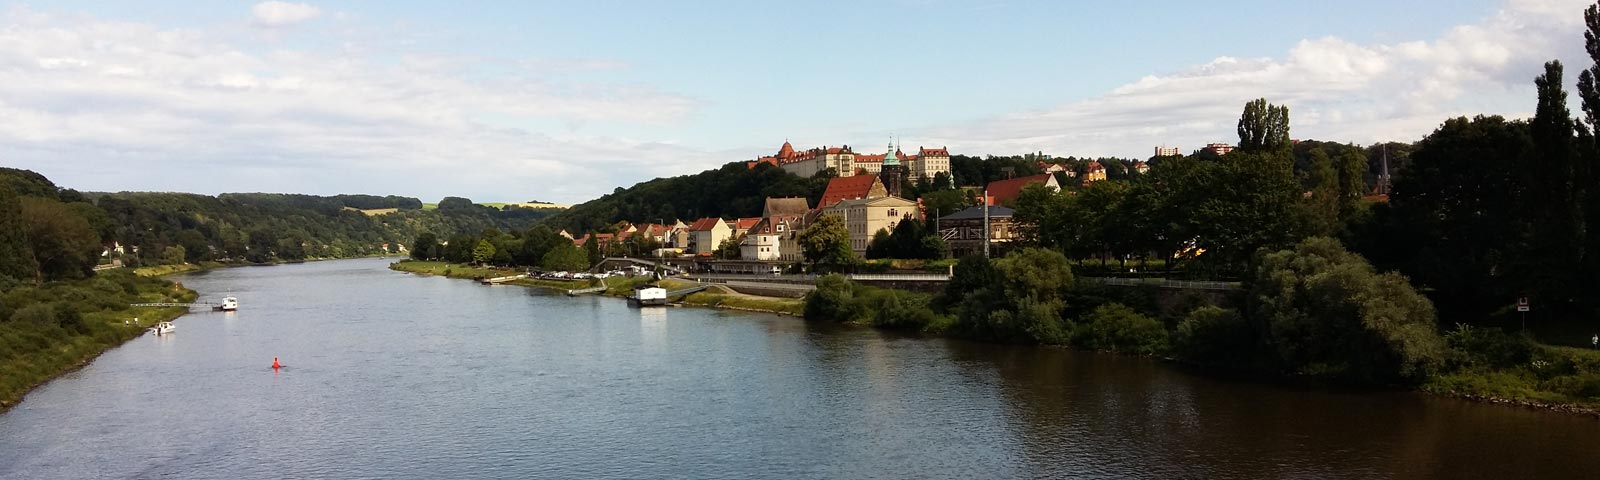 Holdiday-Apartments in Pirna